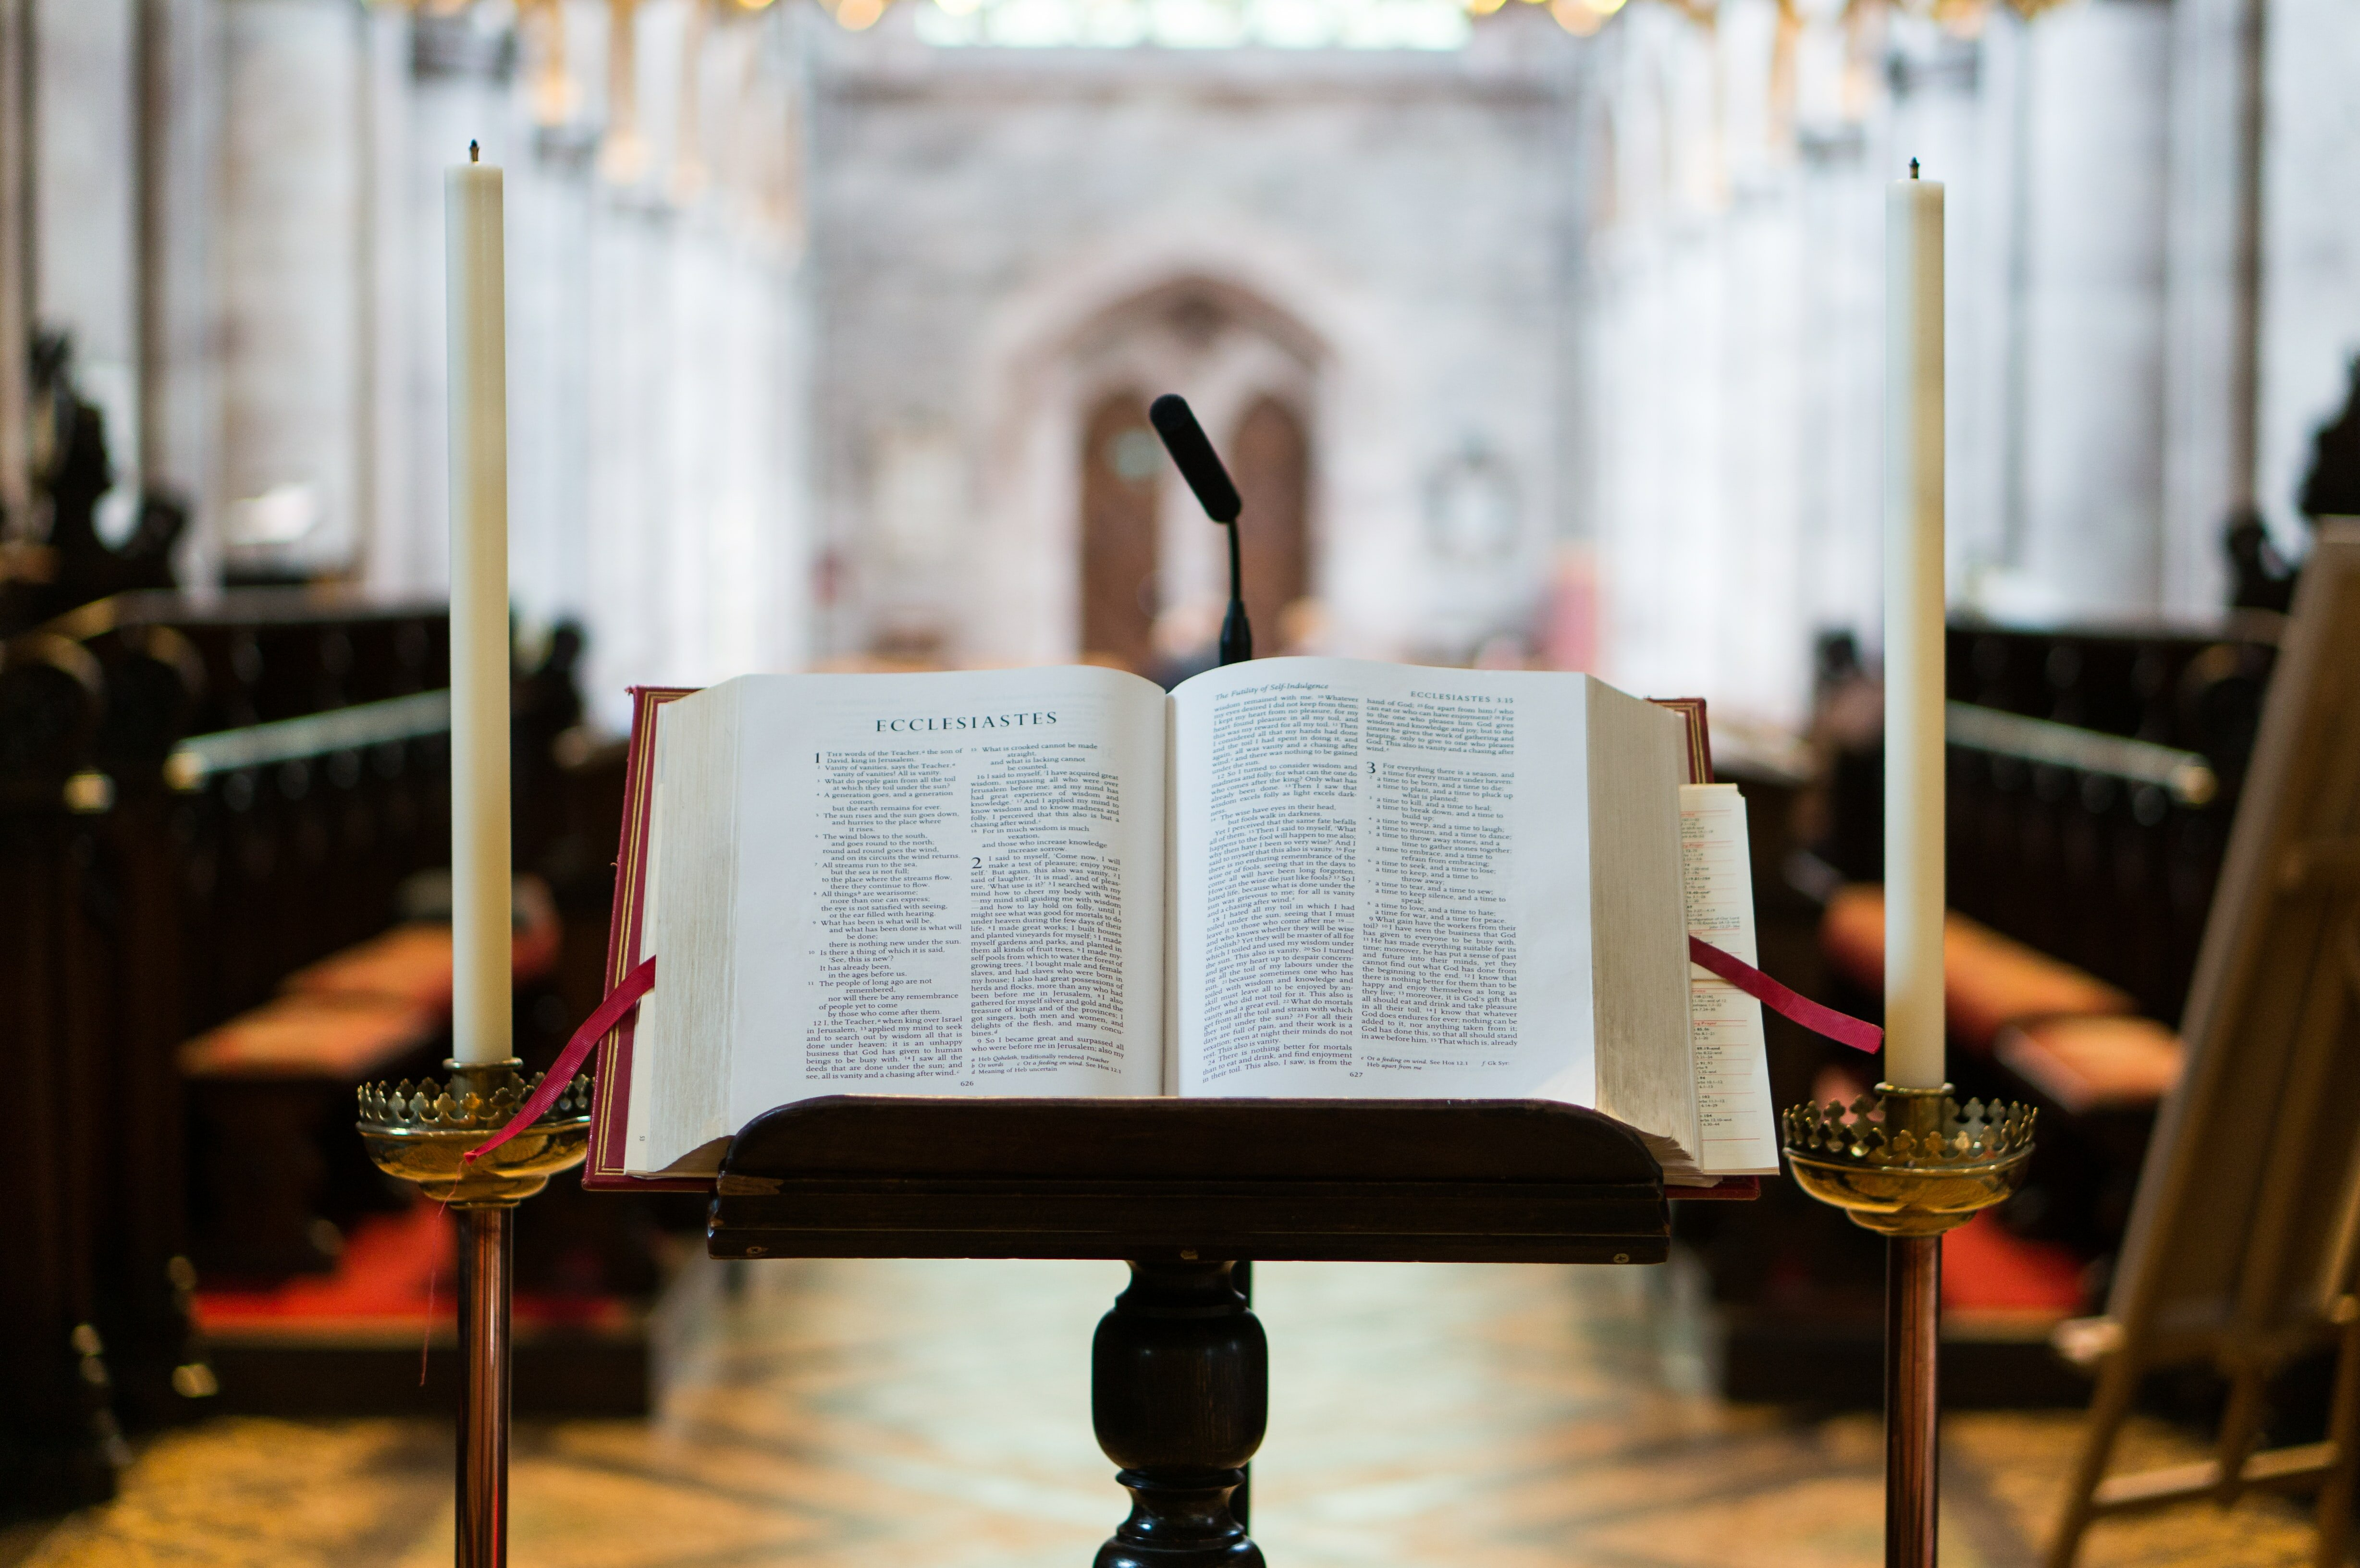 How to Listen to a Sermon (1 Thess 2:13)